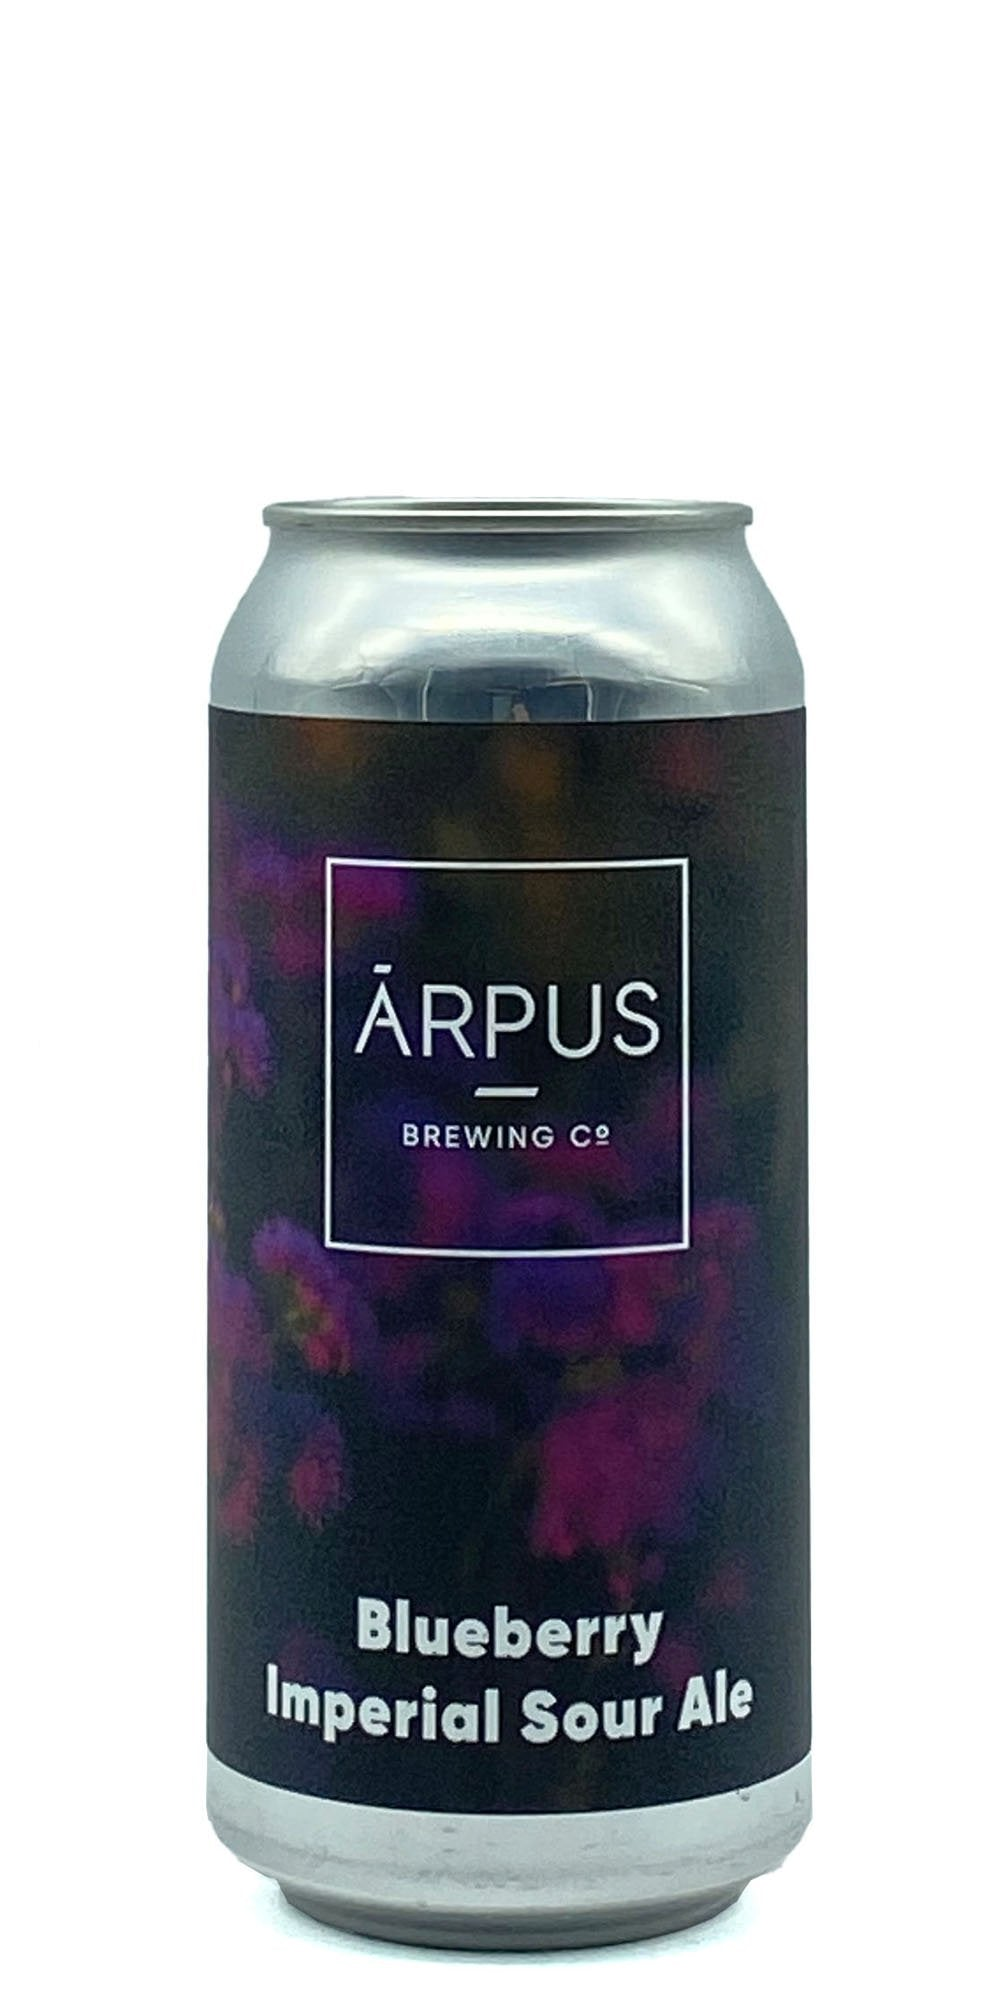 Arpus - Blueberry Imperial Sour Ale